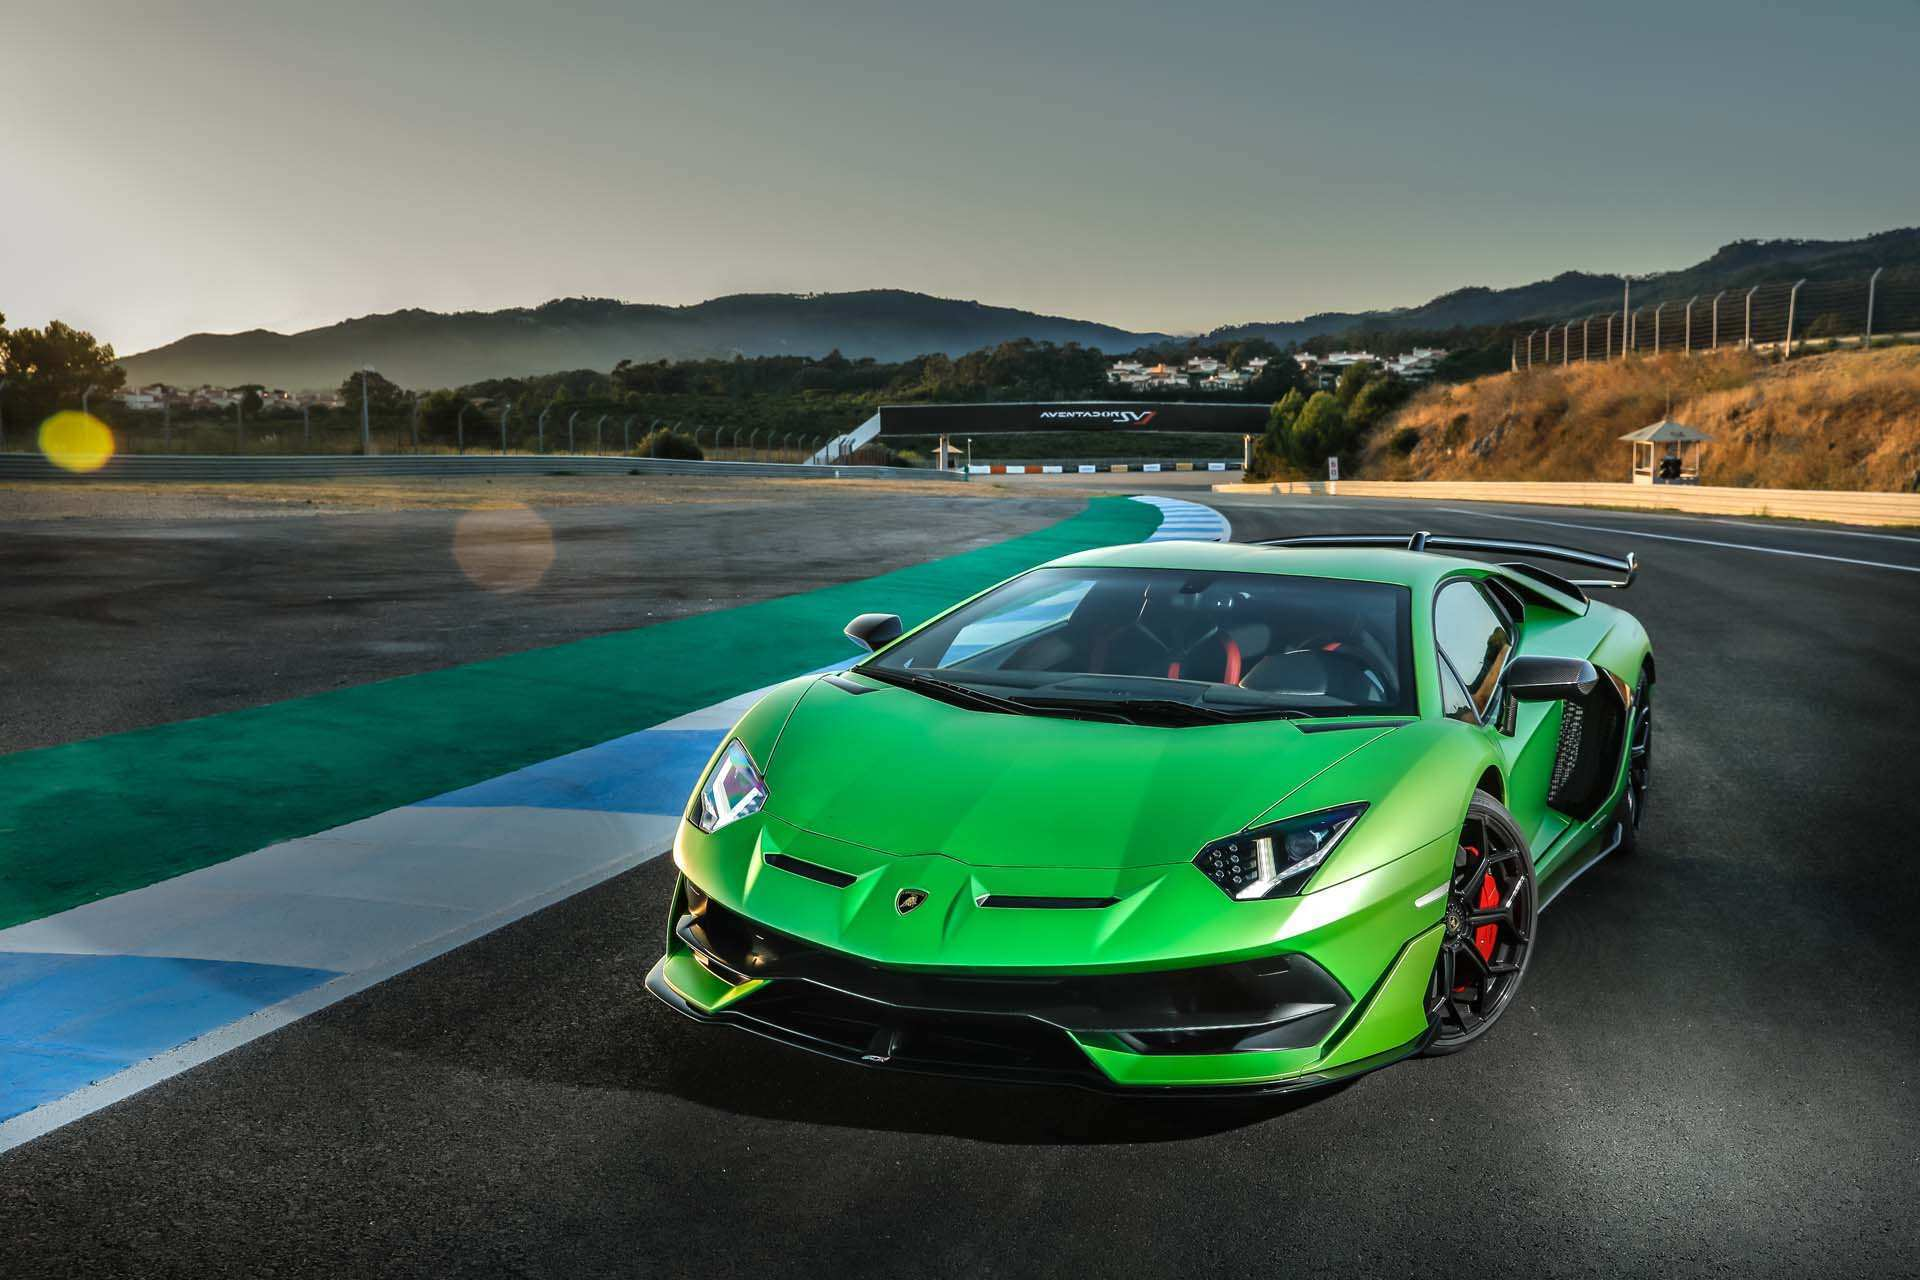 76 Best 2020 Lamborghini Aventador Price Design And Review